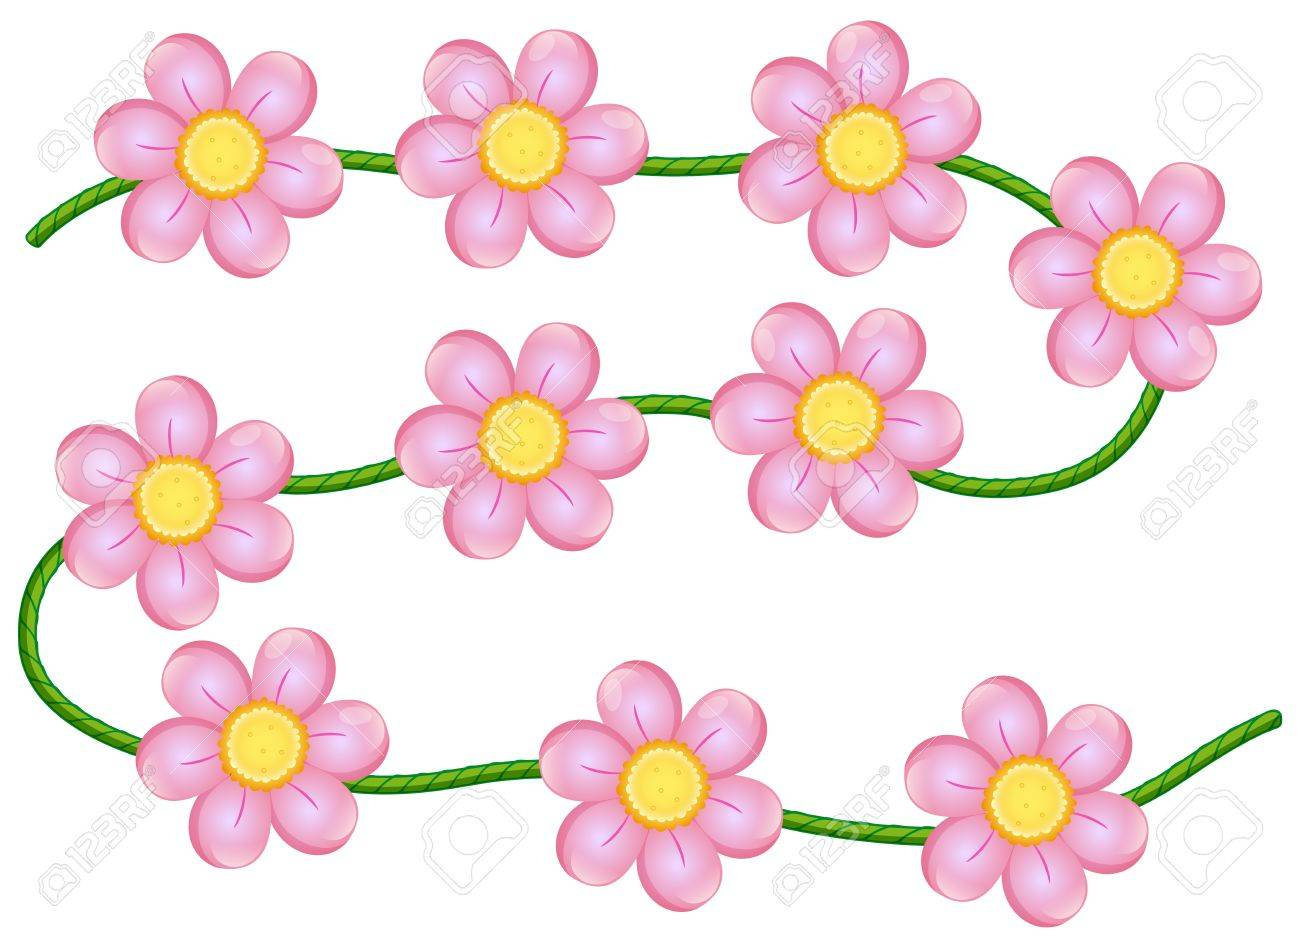 Illustration of vine flowers on a white background